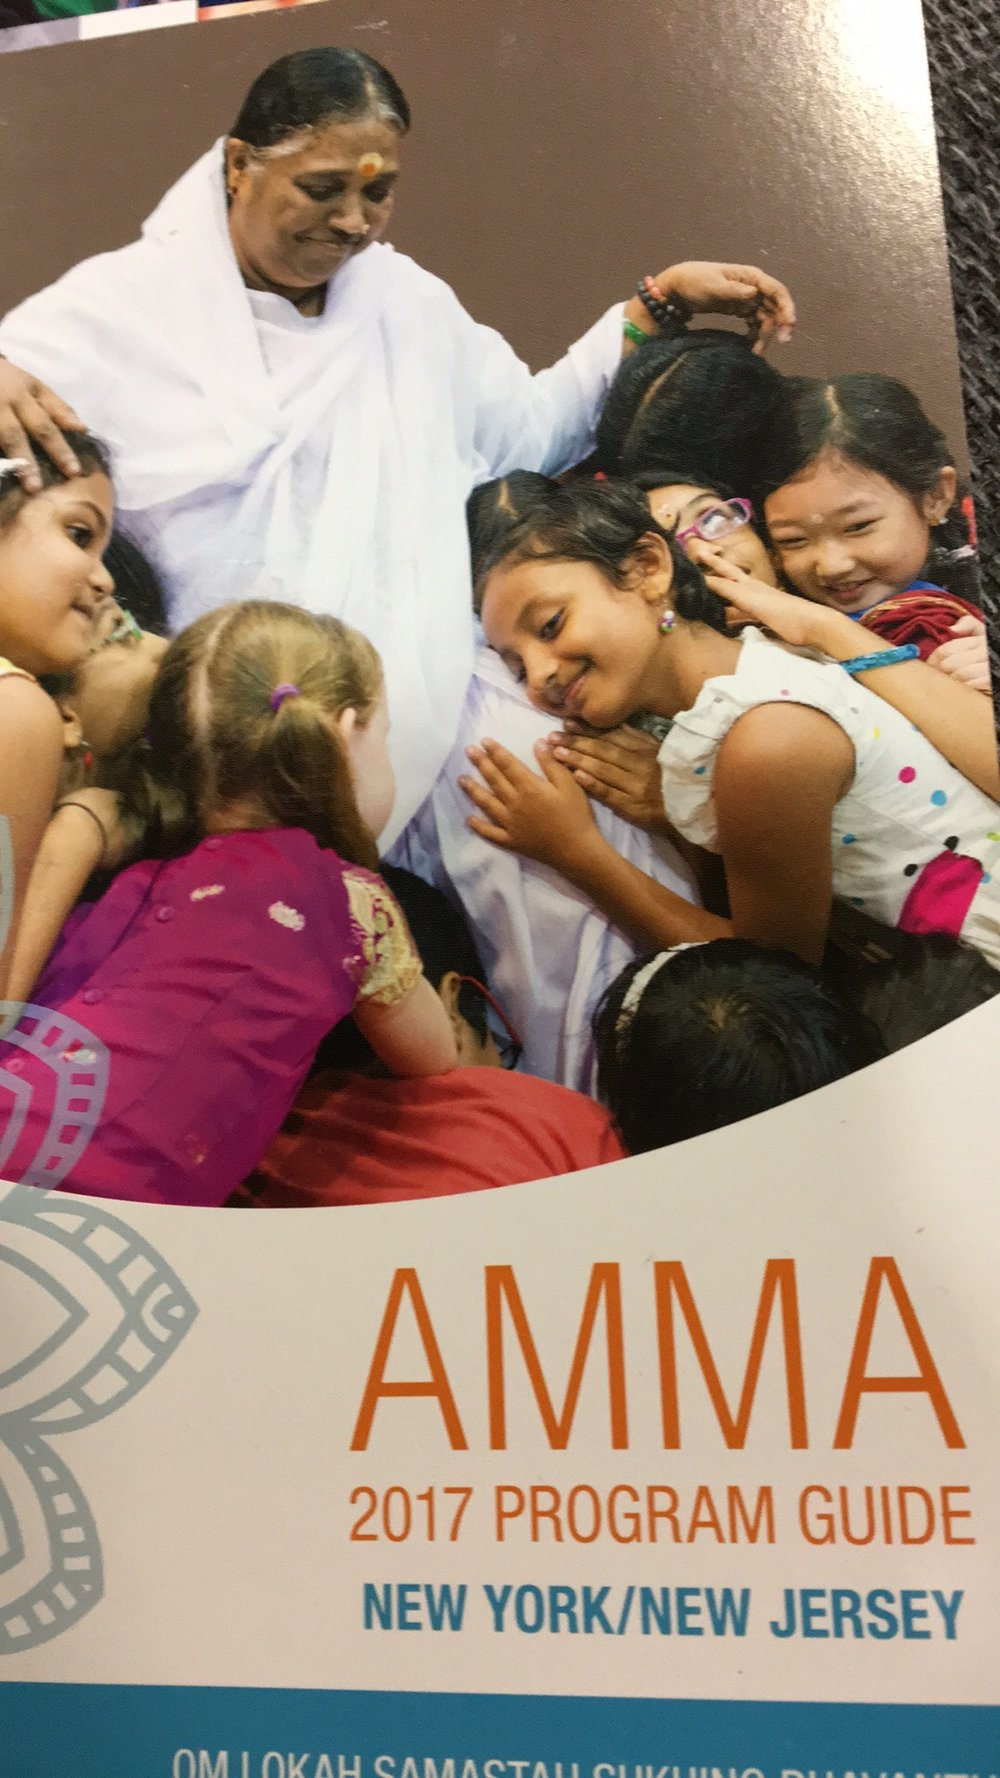 Photography is not allowed inside Amma's event, so here is a picture of the program!